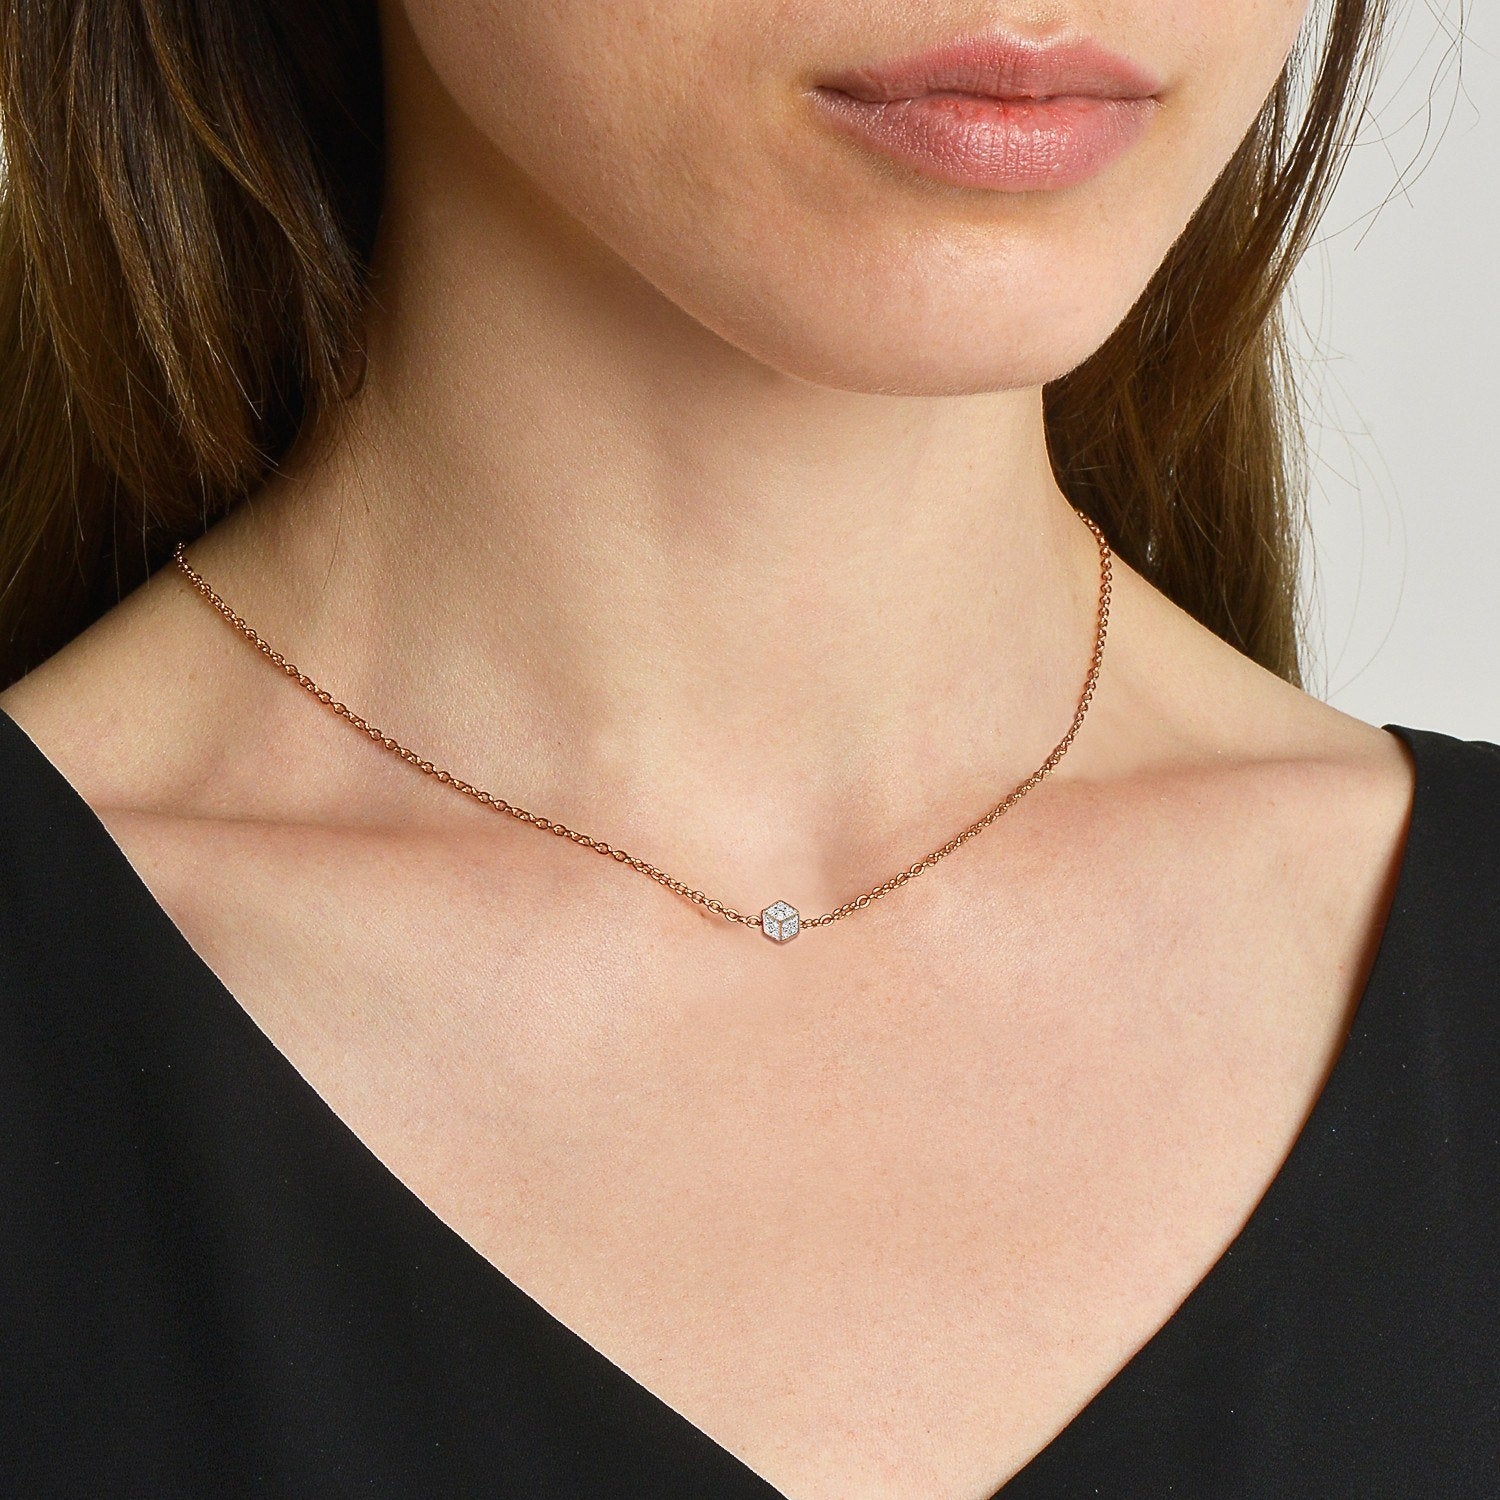 18kt rose gold premier designs necklace